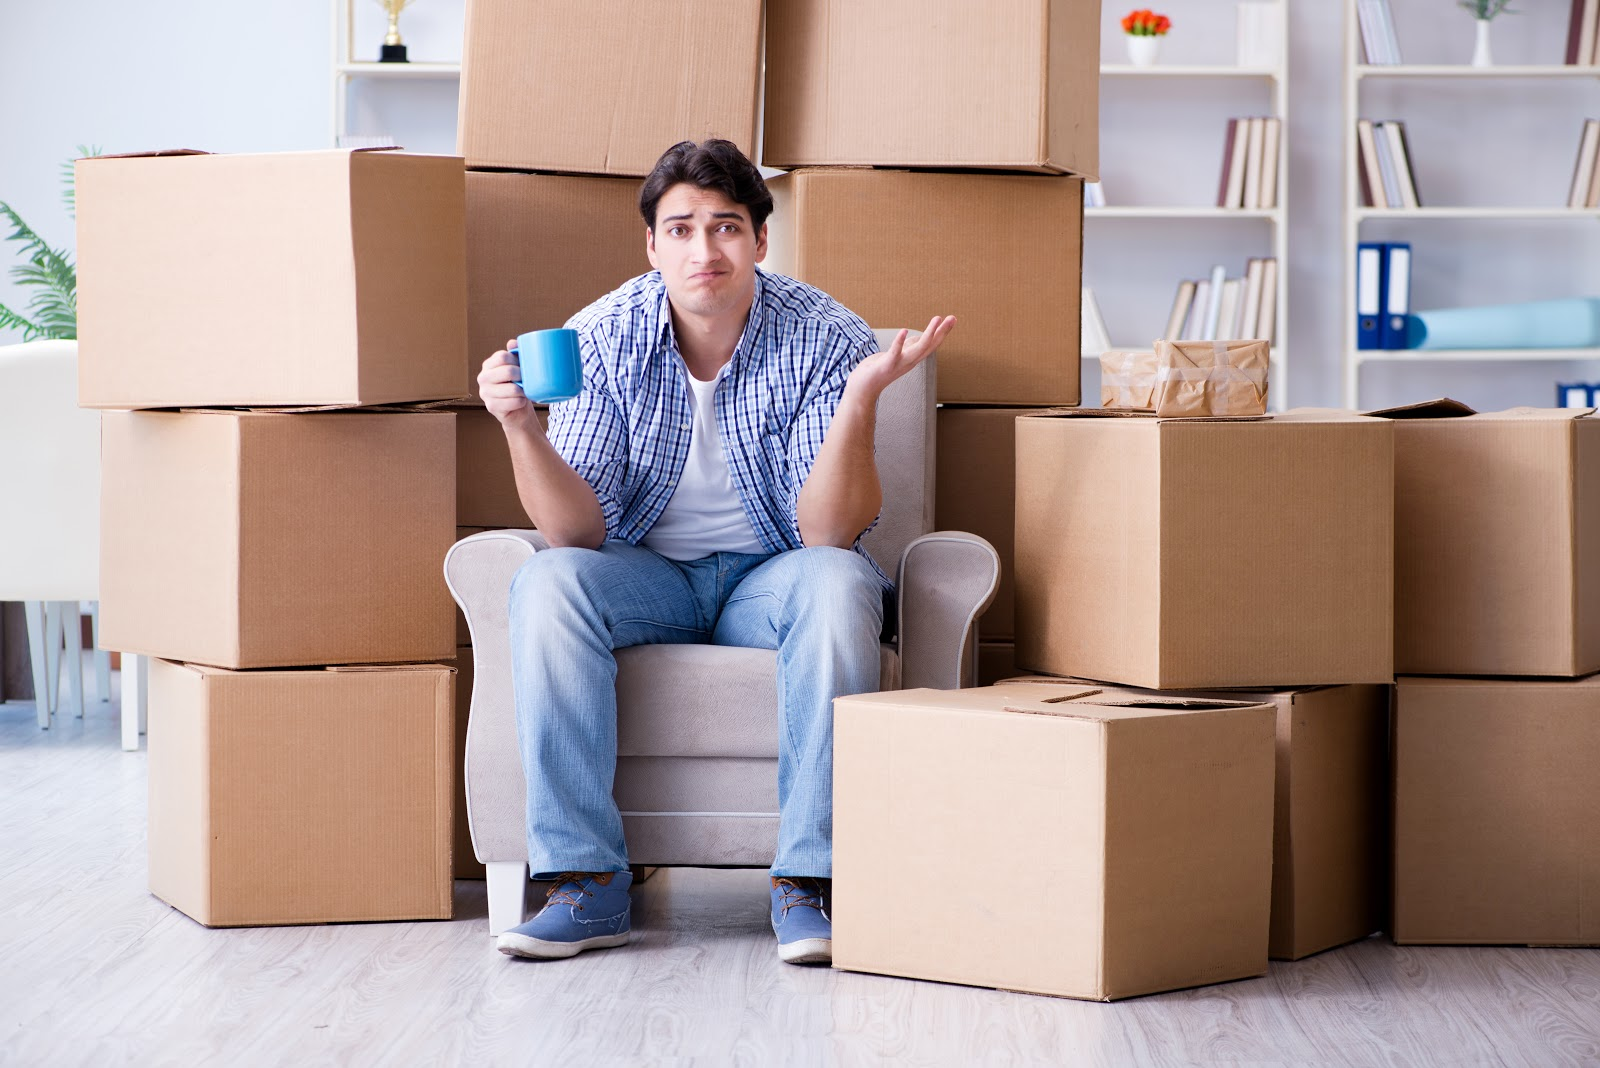 A man looking puzzled and stressed sitting among moving boxes